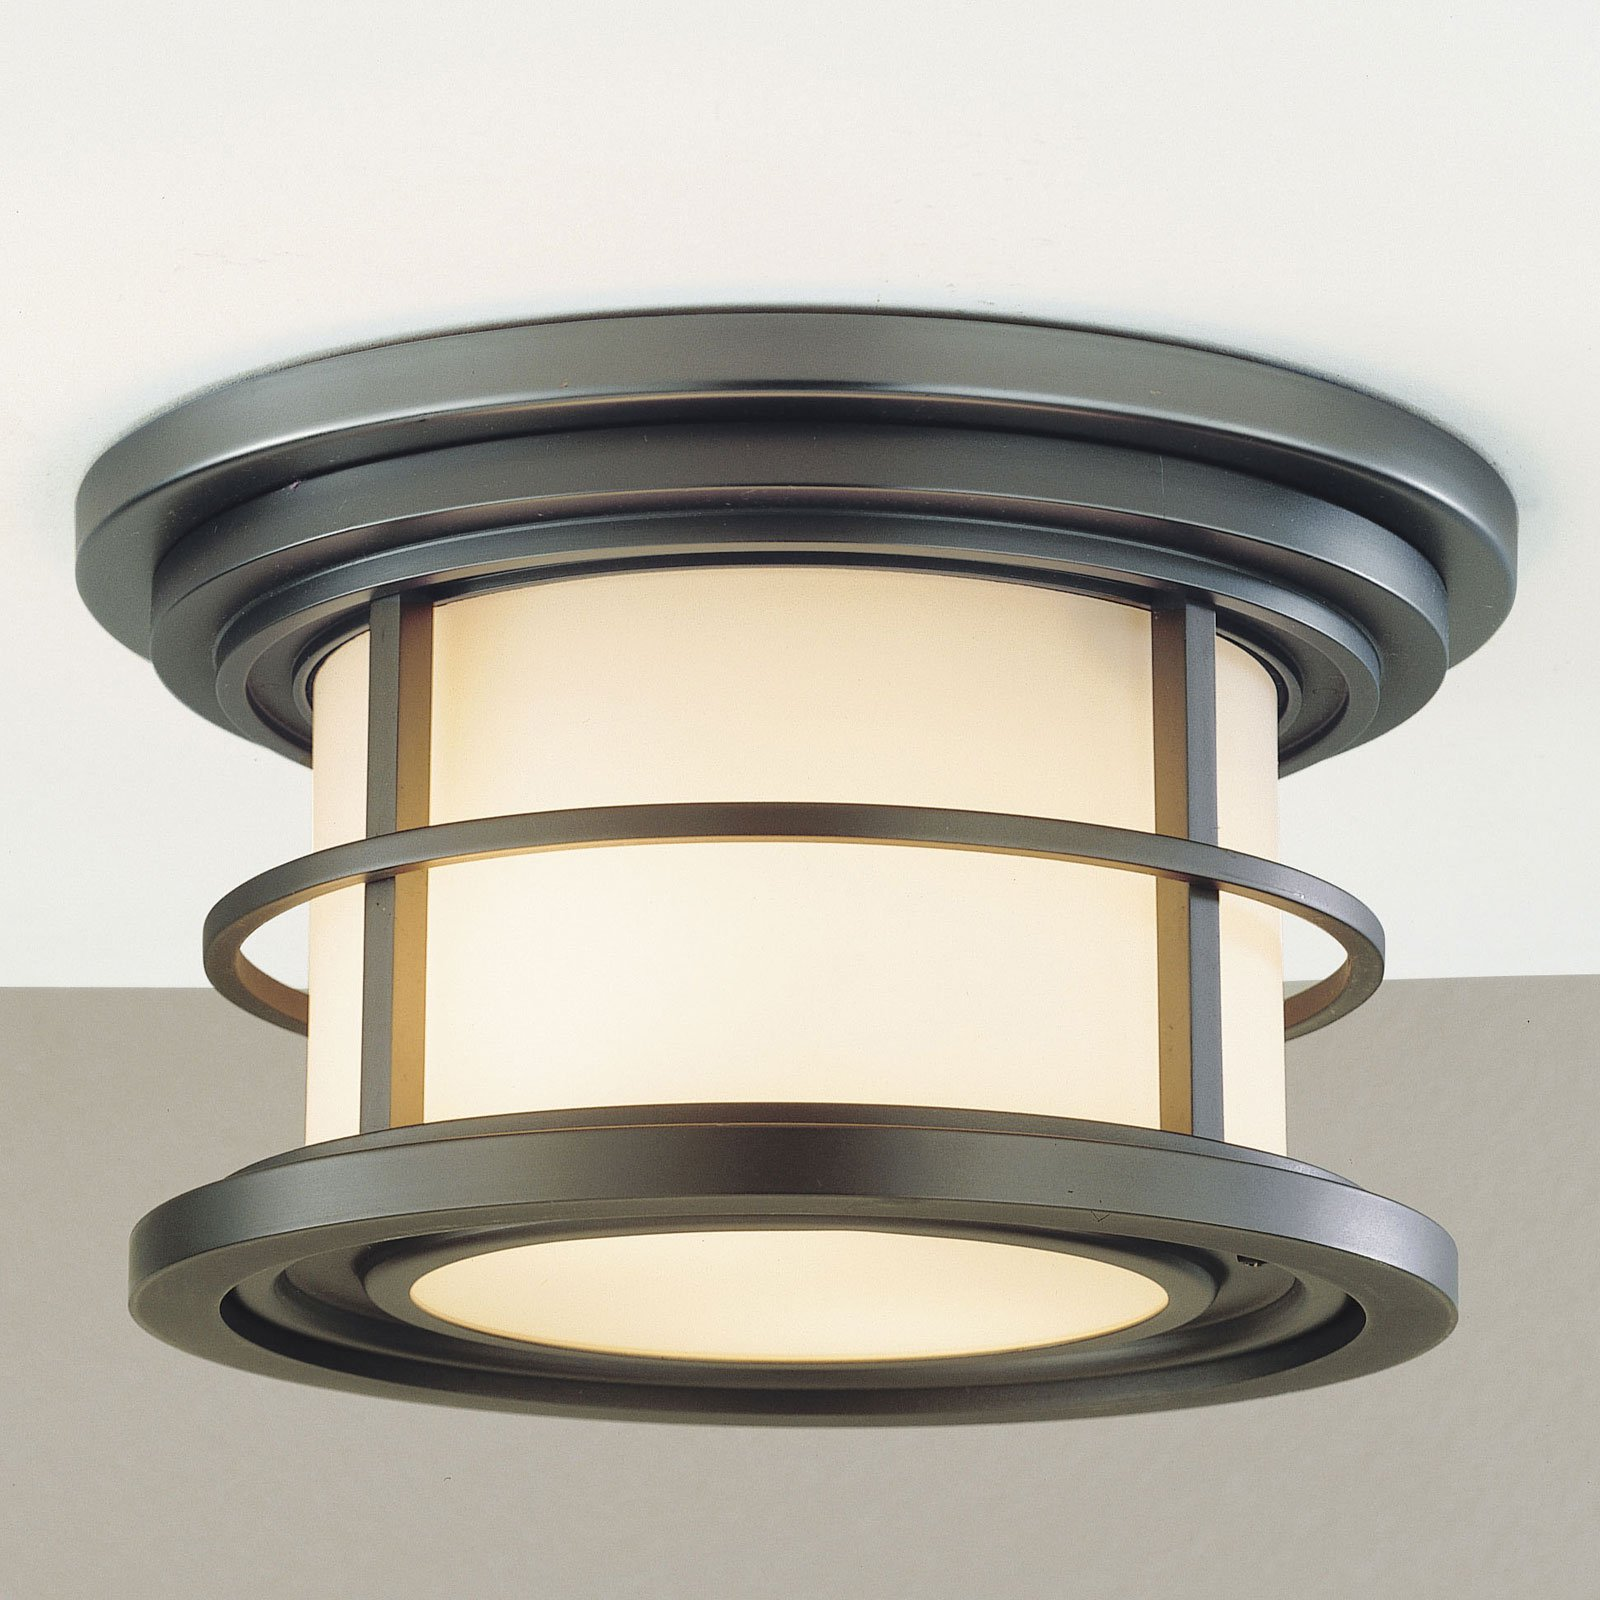 Feiss Lighthouse Outdoor Ceiling Light - 5.5H in. Burnished Bronze